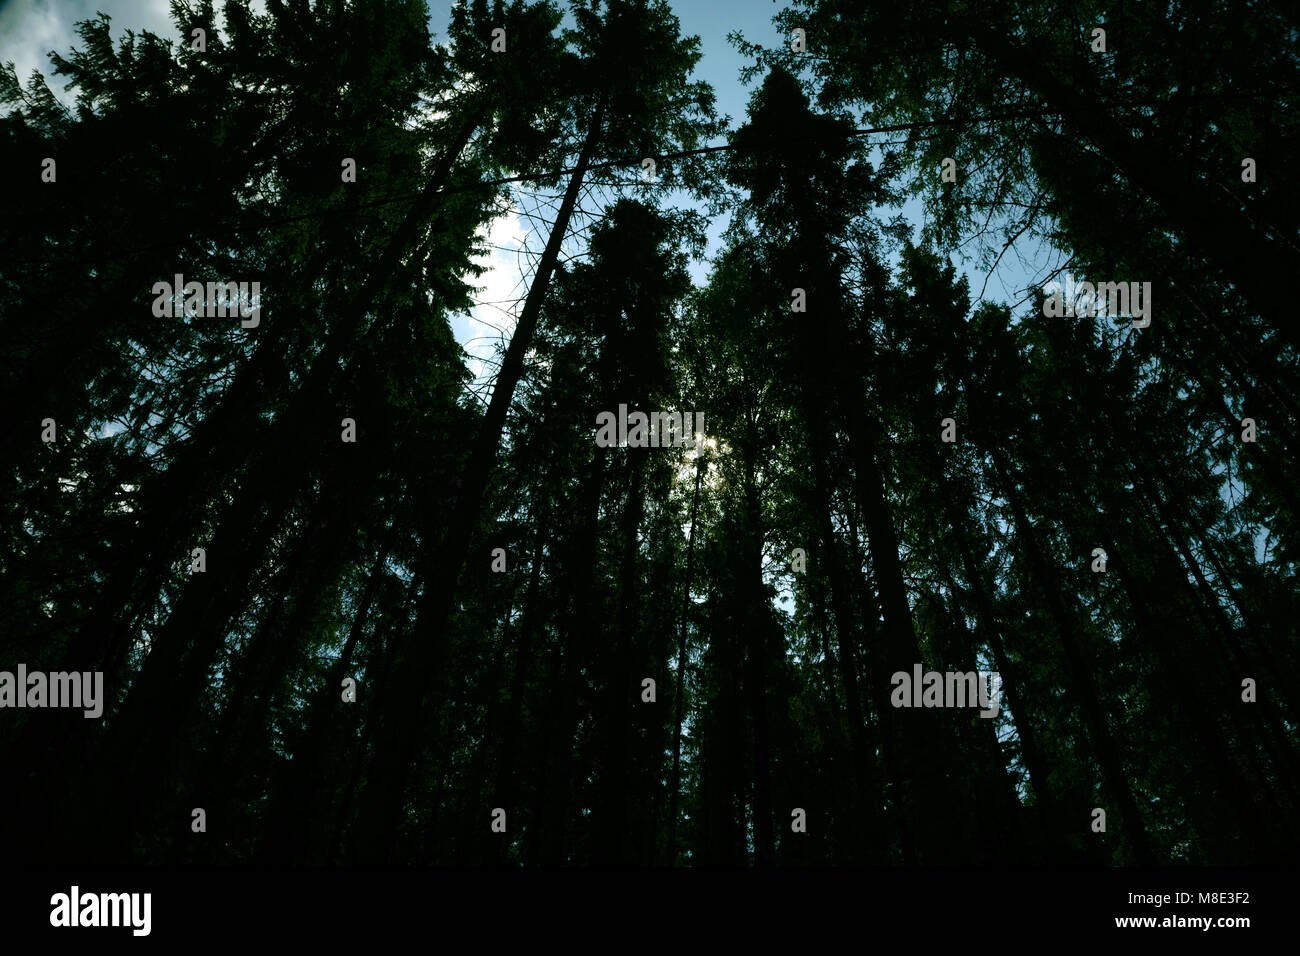 big beech trees in spring time - Stock Image